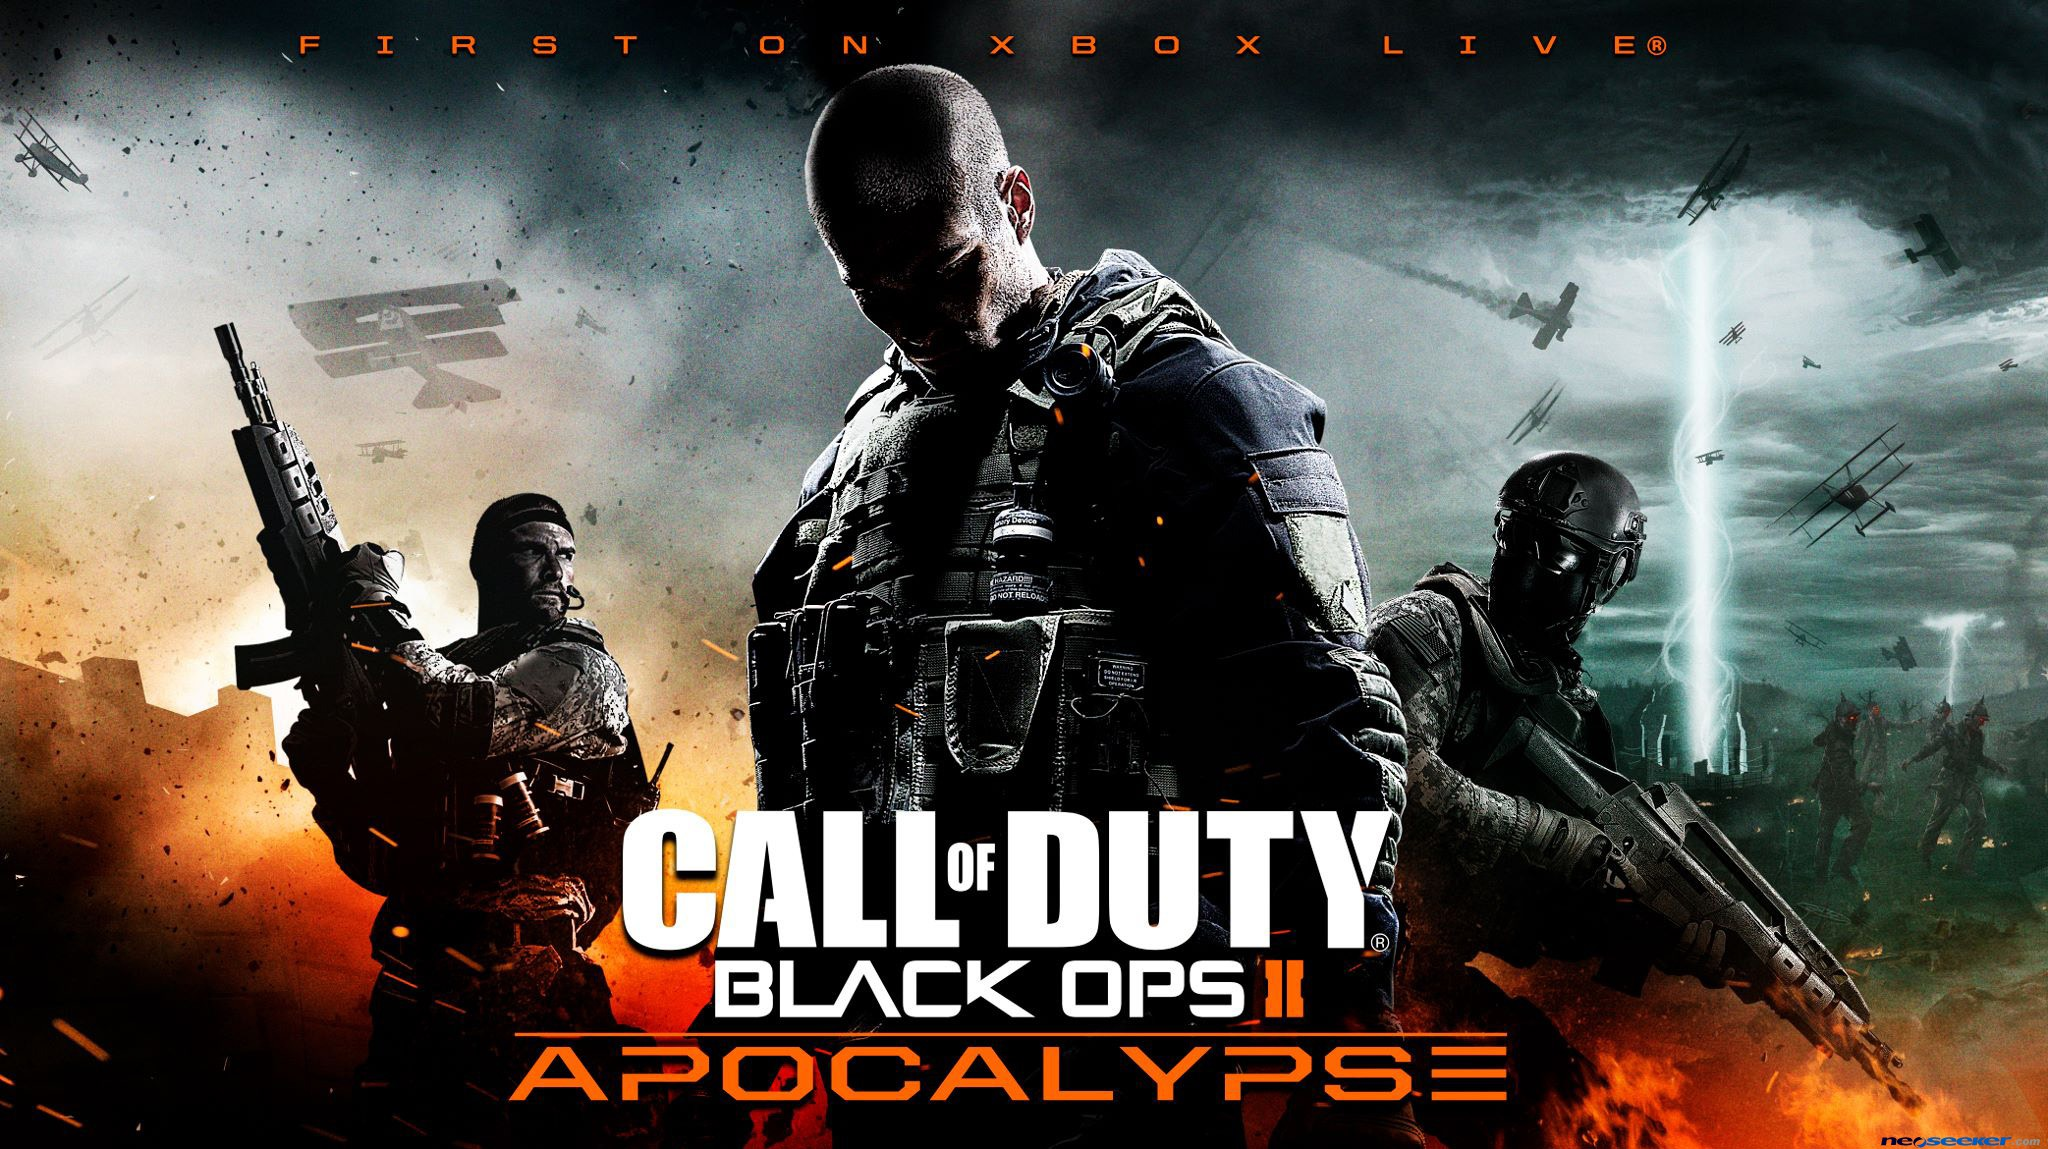 call-of-duty-black-ops-hd-wallpaper-wp3403642